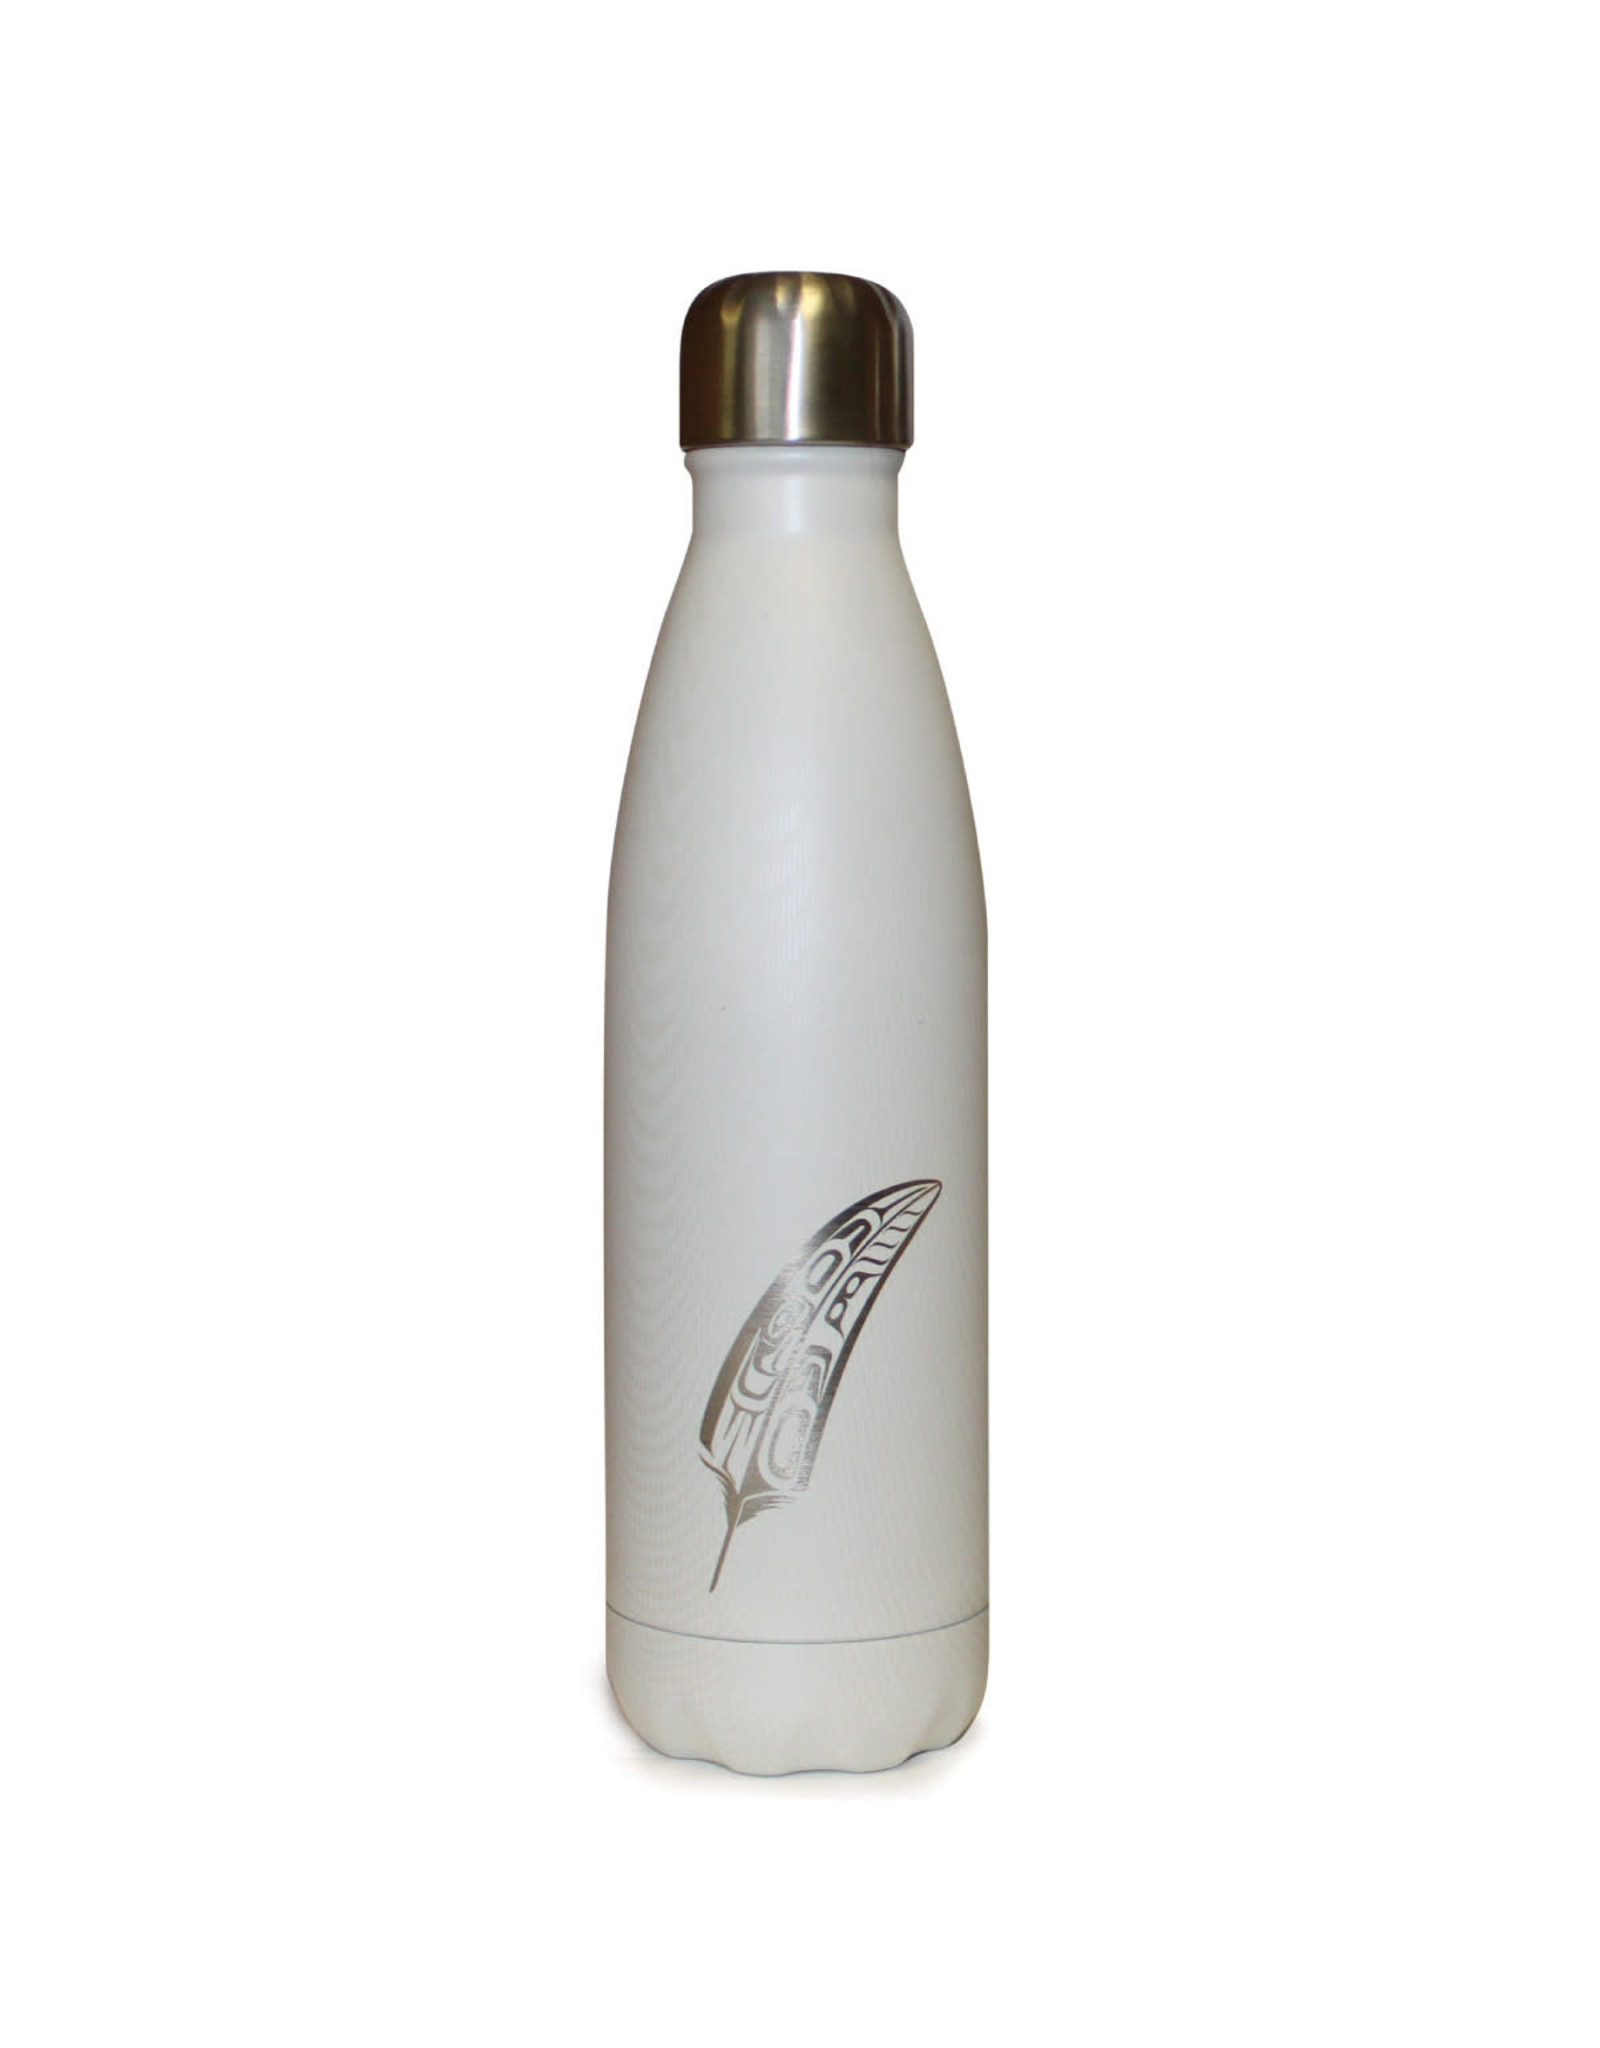 Insulated Bottle - Gift of Honour by Francis Horne Sr.